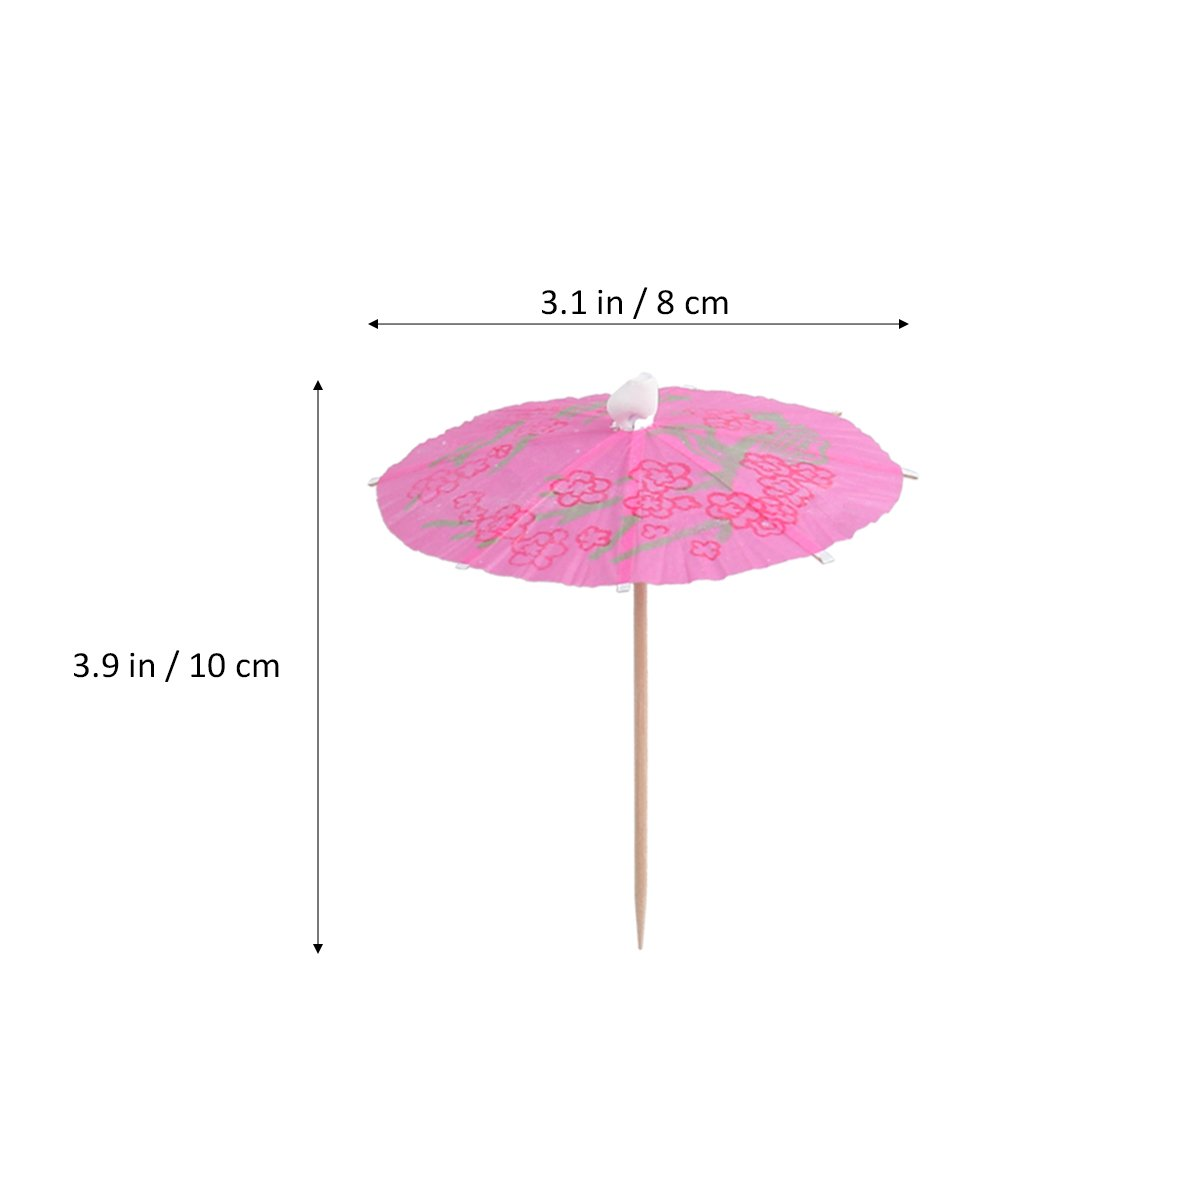 LUOEM Umbrella Parasol Cocktail Picks Cocktail Parasol Drink Cupcake Toppers Umbrella Paper Parasol Picks for Hawaiian Party Pool Party,Pack of 50 Mixed Color